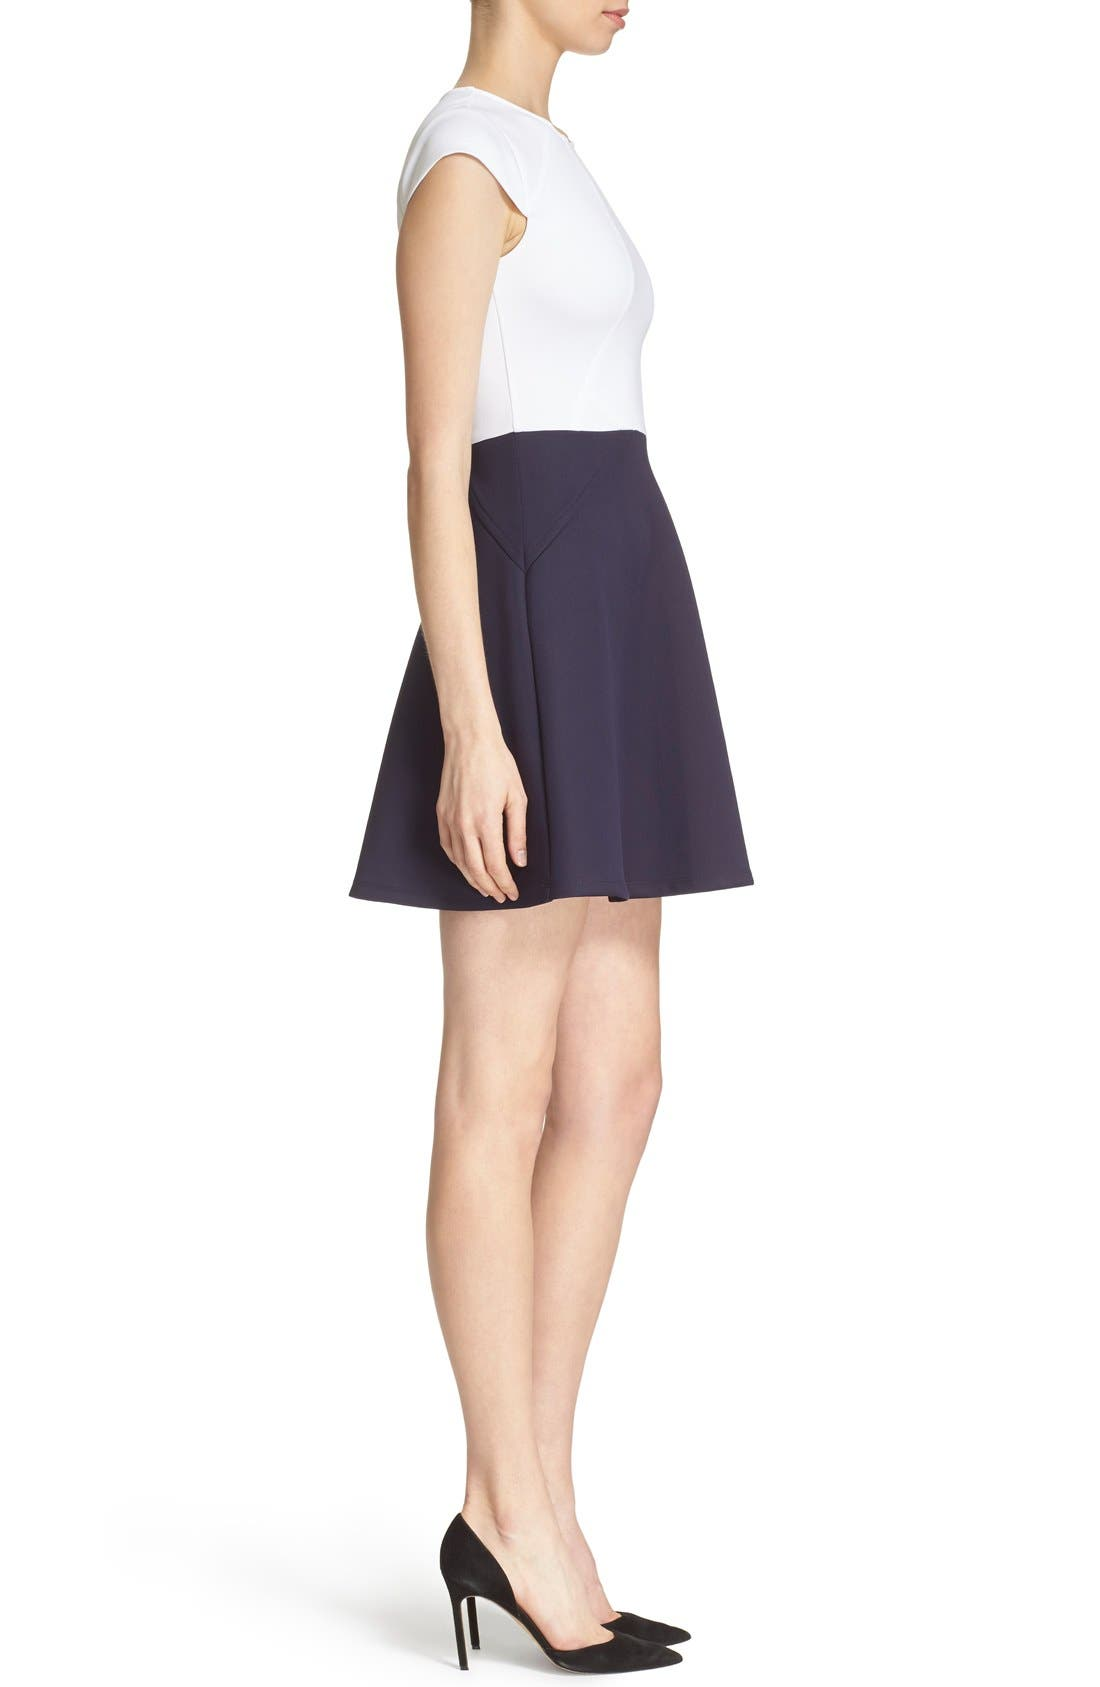 'AABRR' Colorblock Cap Sleeve Skater Dress,                             Alternate thumbnail 4, color,